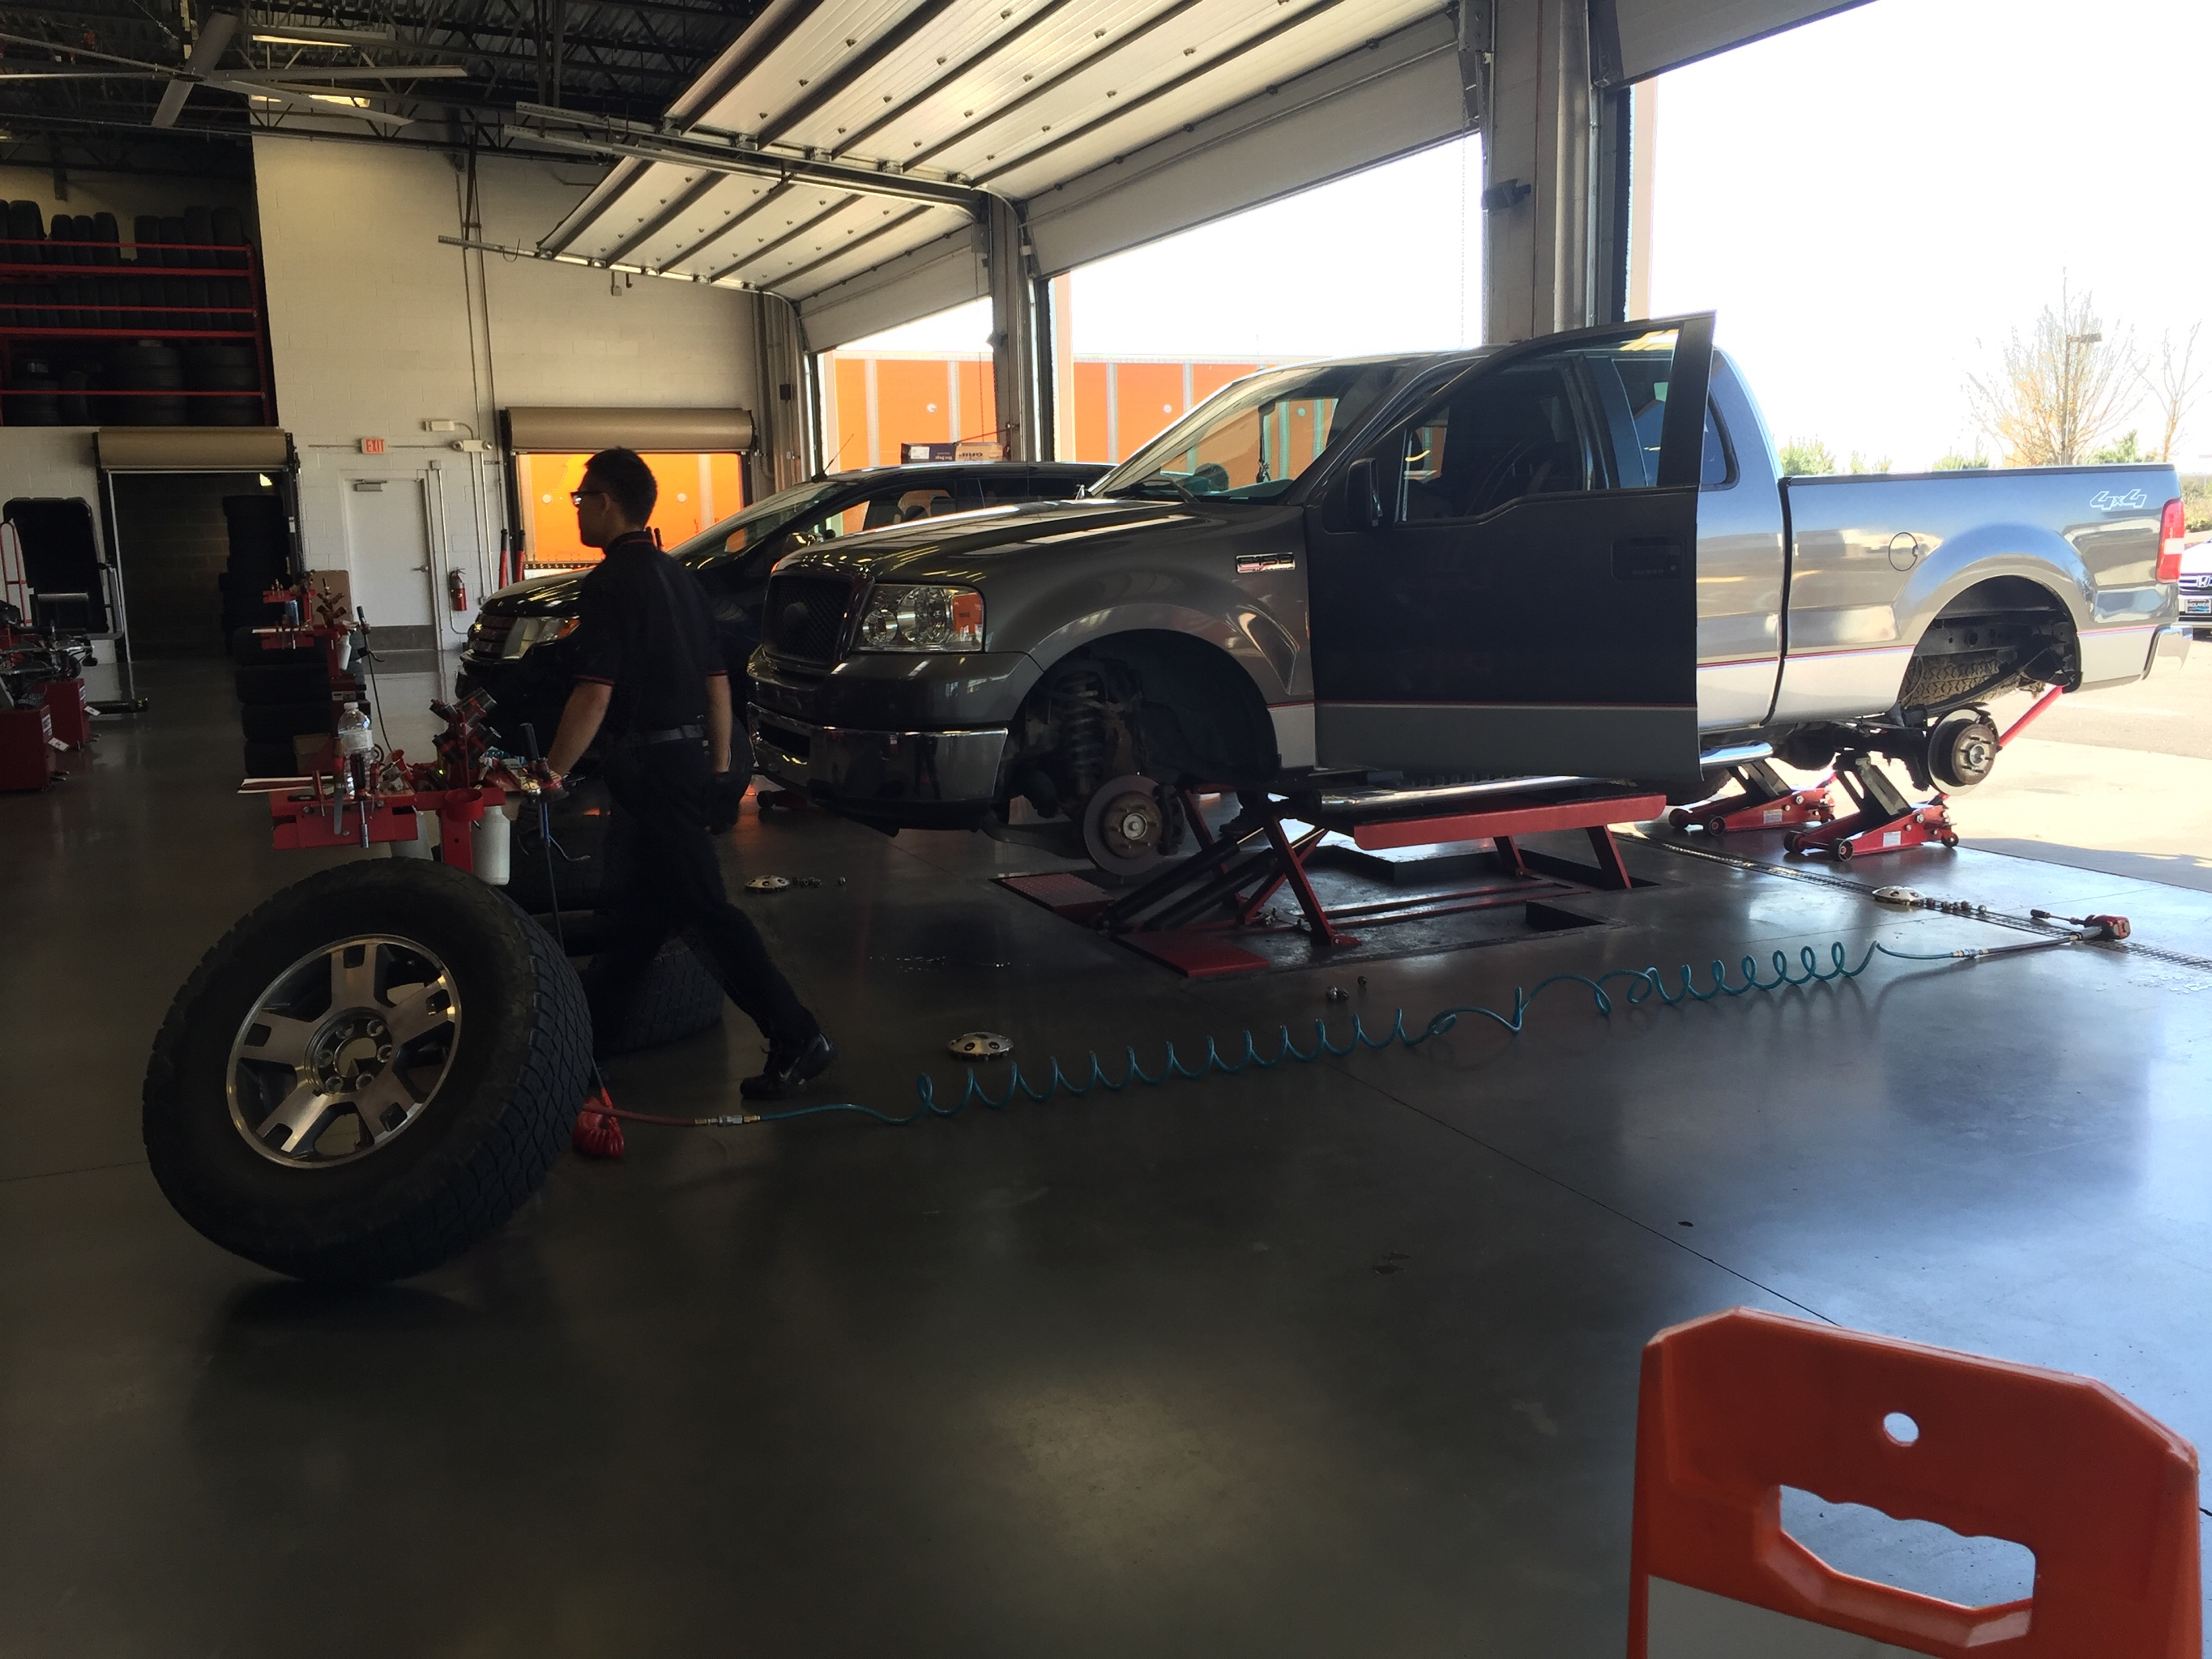 Discount Tire 5053 Sunset Blvd Lexington Sc 29072 Yp Com